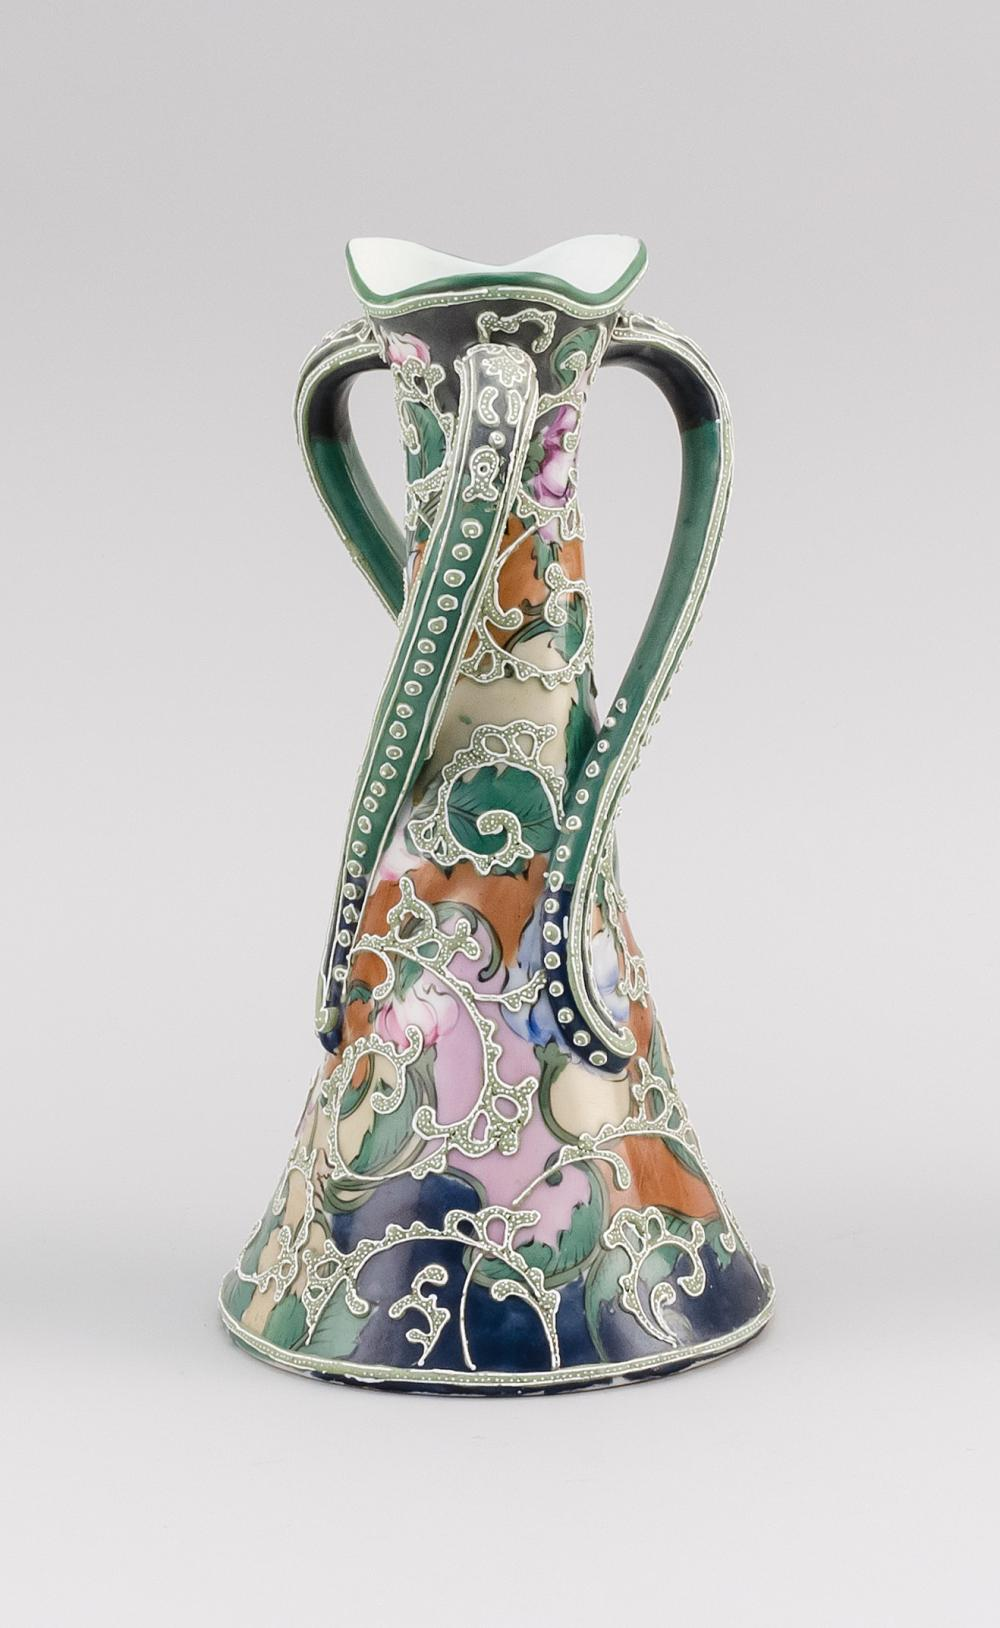 MORIAGE NIPPON PORCELAIN VASE Conical, with three twisting handles and an elaborate floral design. Height 10.5